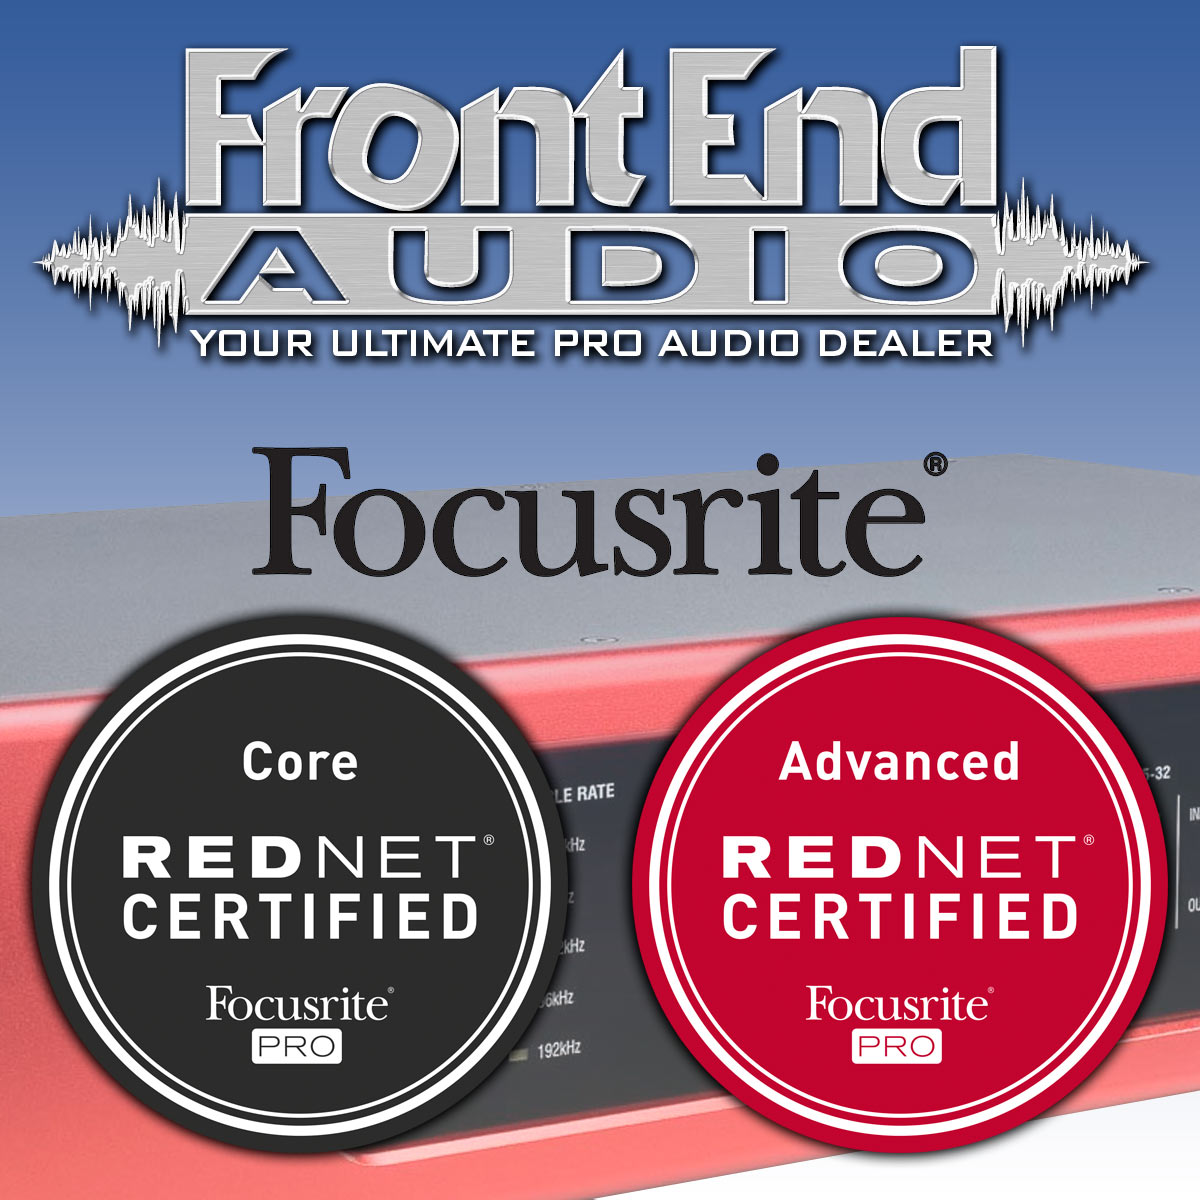 Front End Audio is Focusrite RedNet Certified